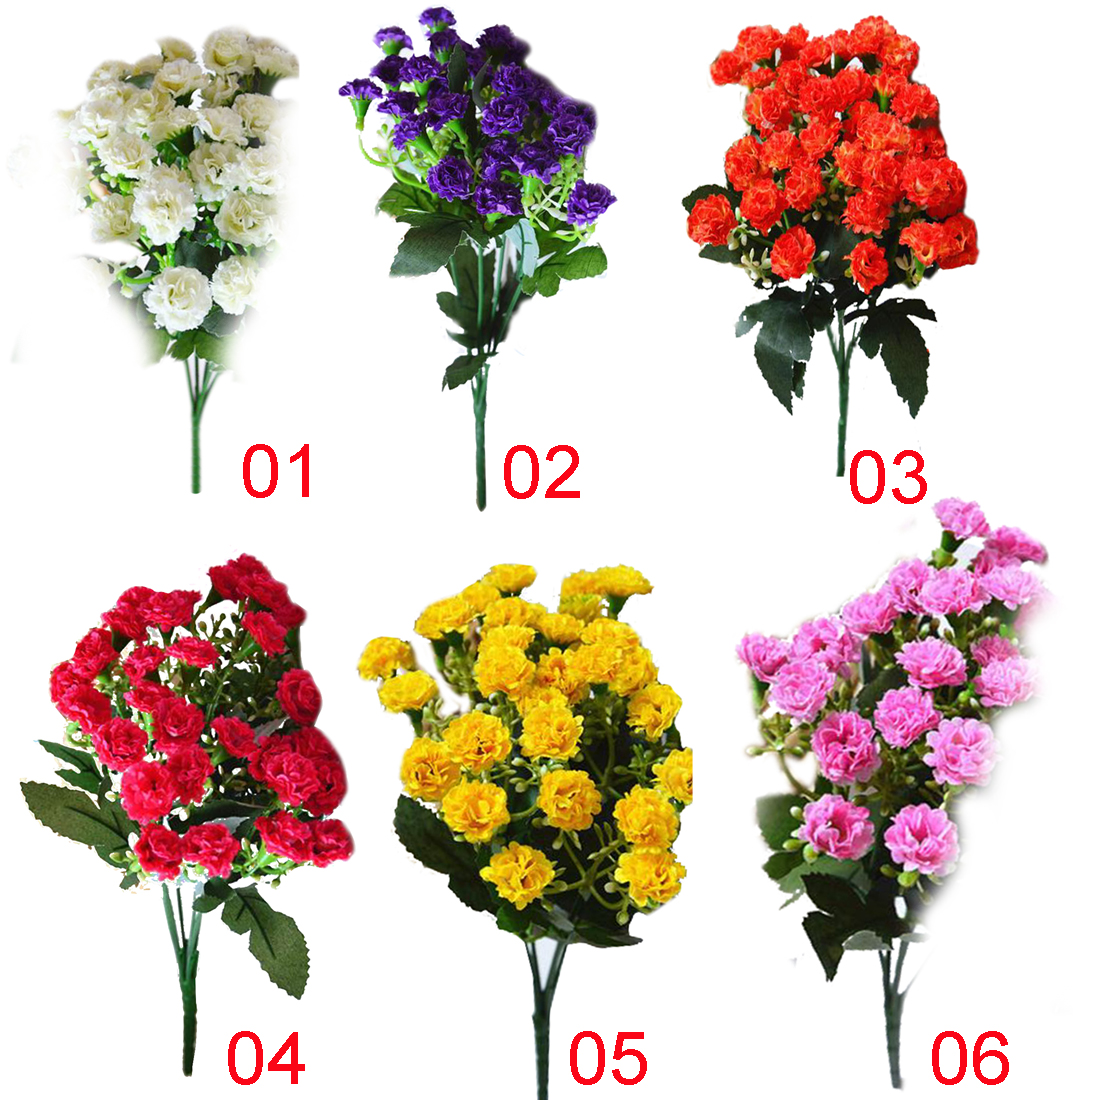 New artificial silk flowers carnation 30 buds flowers 6 branches 1 new artificial silk flowers carnation 30 buds flowers 6 branches 1 bouquet mother lilac flower craft for wedding home party mightylinksfo